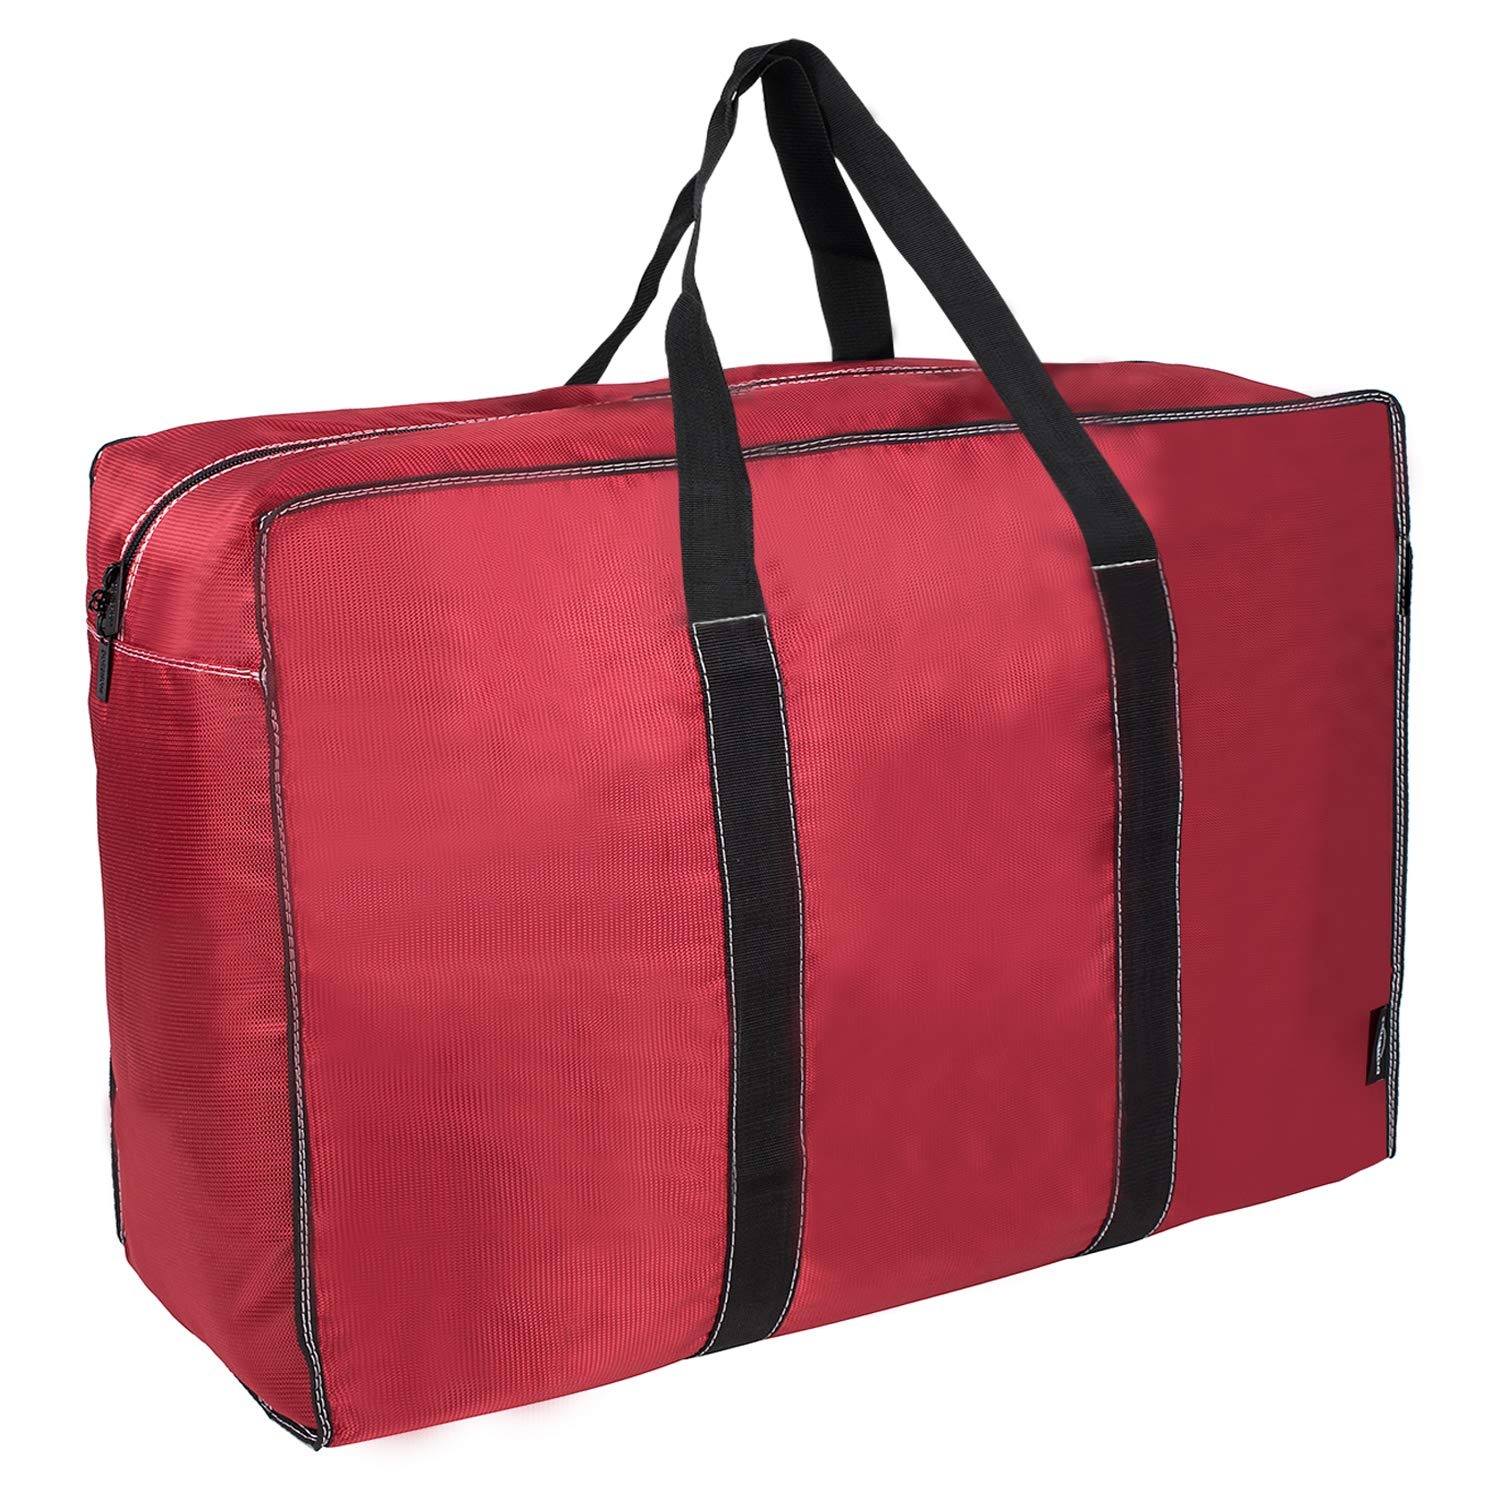 DOKEHOM DKA1015RDXL 130L Thickened X-Large Storage Bag (4 Colors), Fabric Clothes Bag, Ultra Size Under Bed Storage, Moisture Proof (Red, XL)